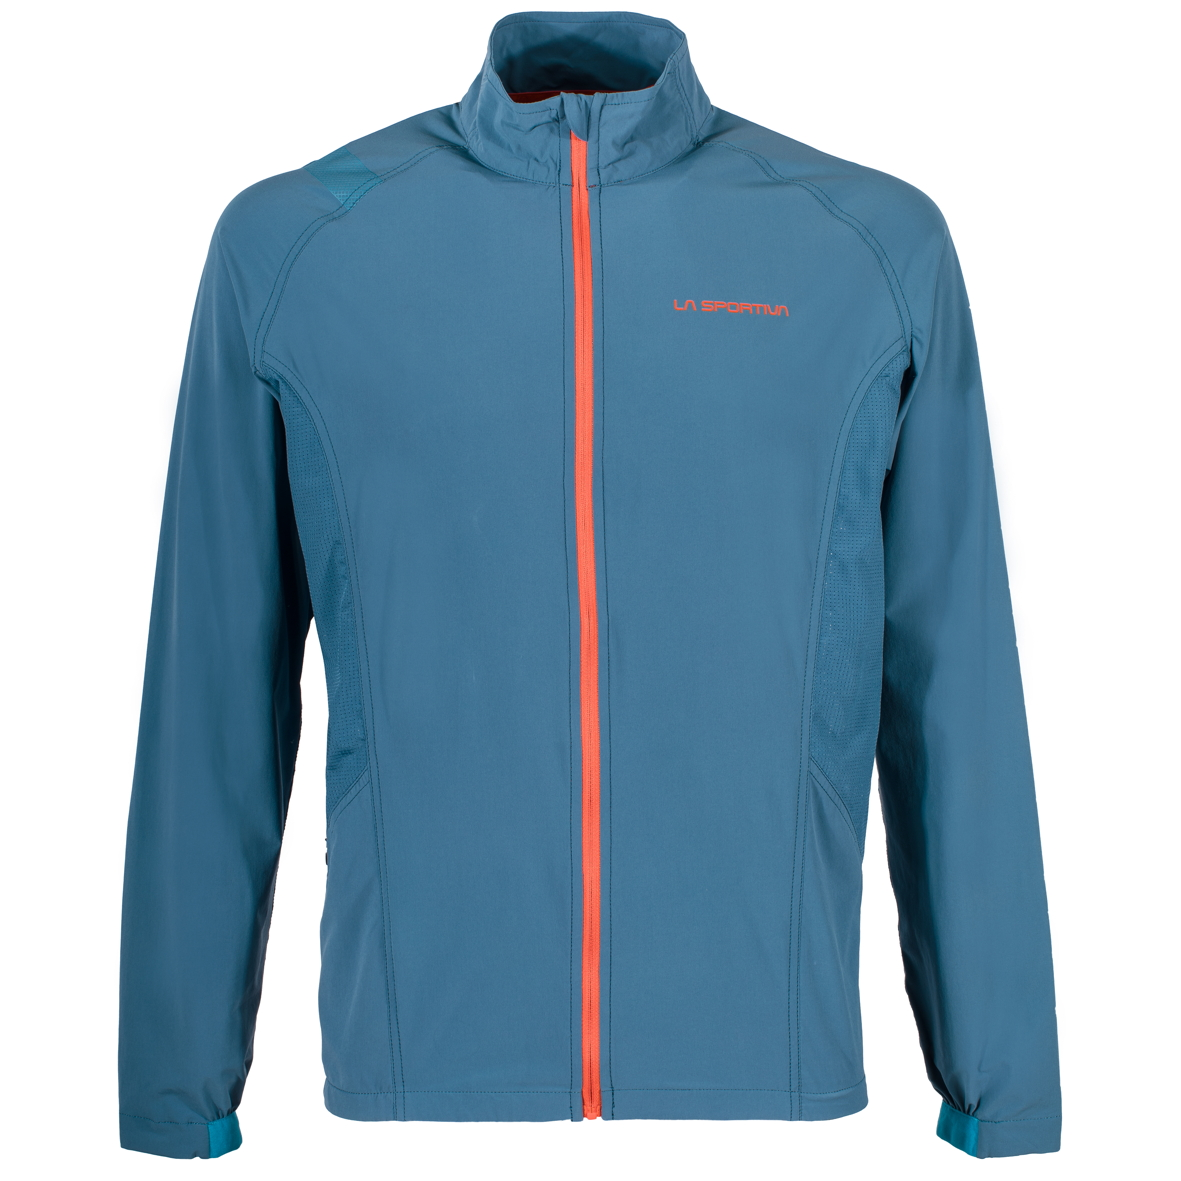 La Sportiva Levante Jacket : Lake